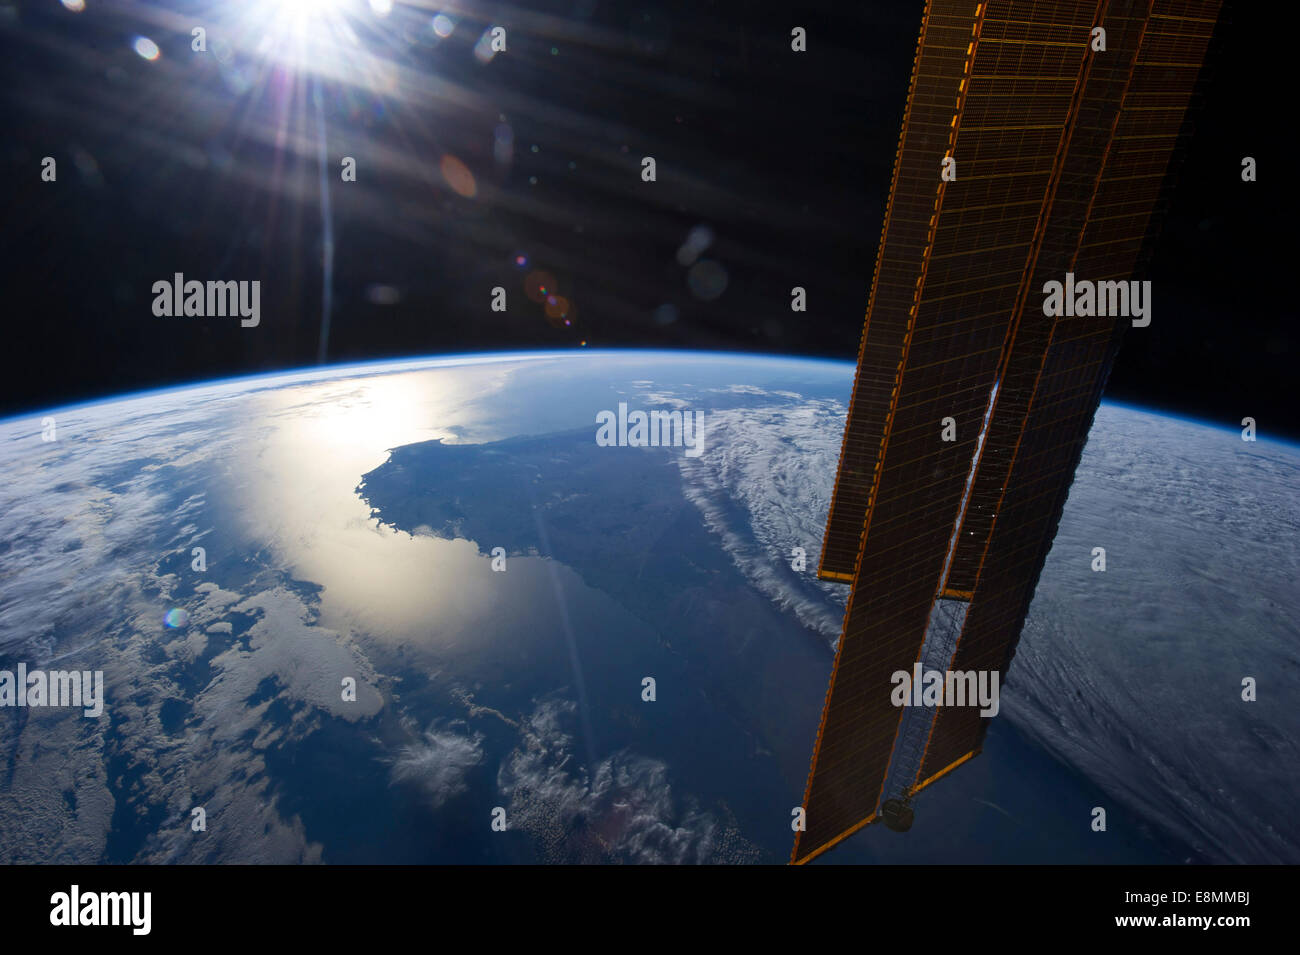 April 1, 2013 - The sun is about to set in this scene showing parts of southwestern Australia. Several of the orbital - Stock Image